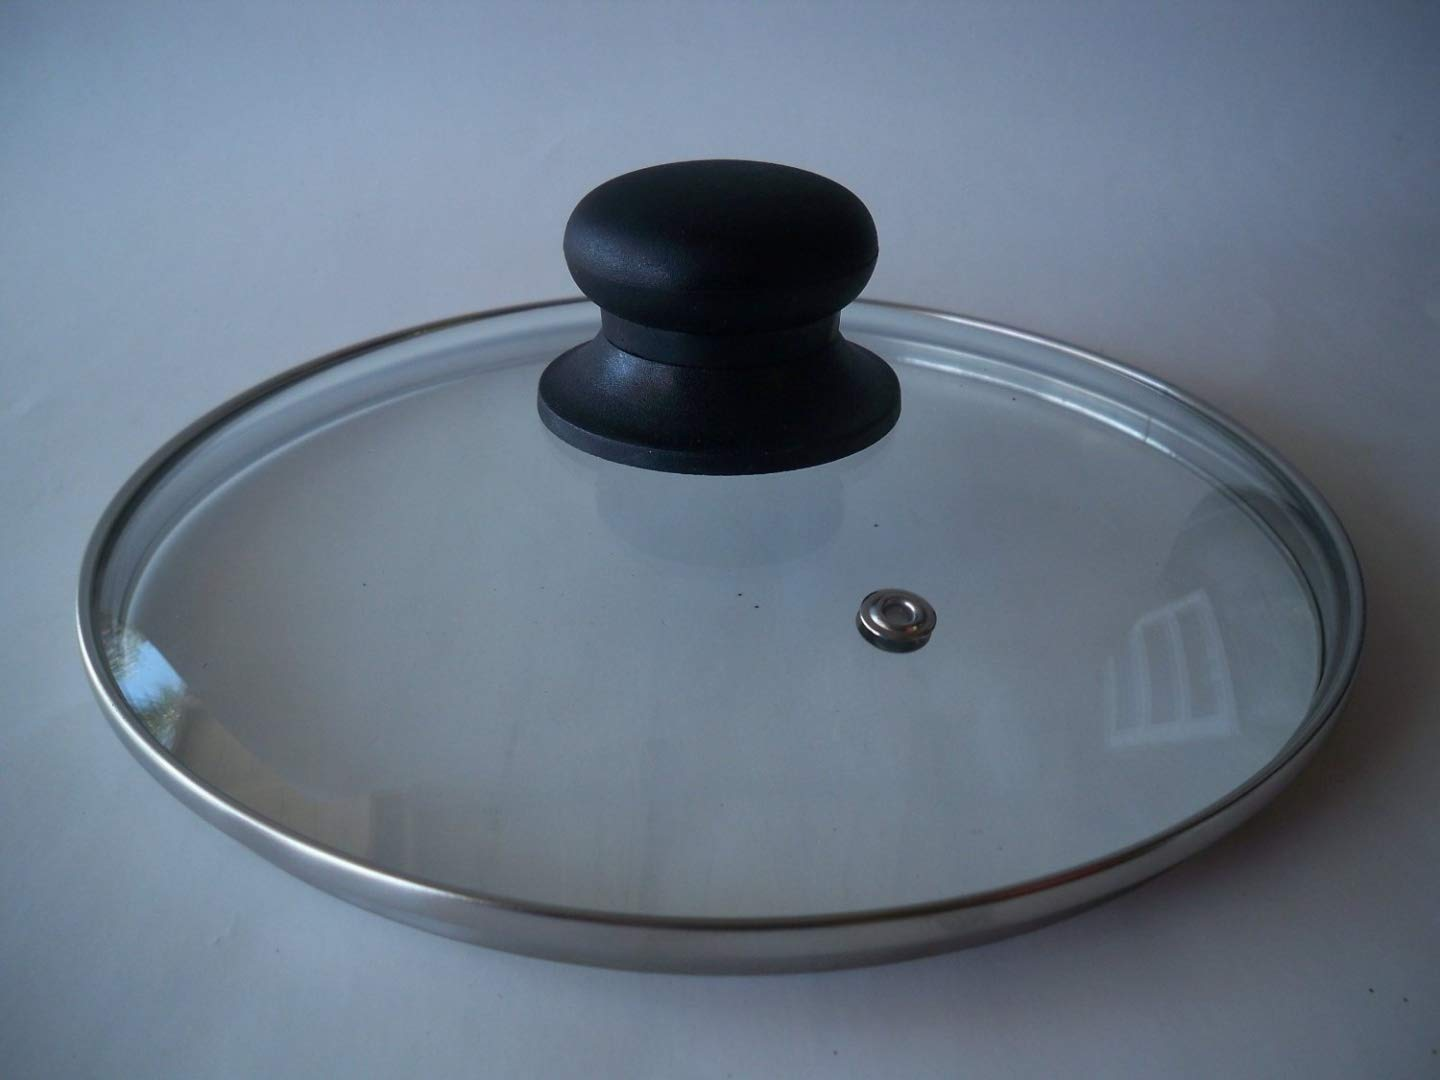 Amazon.com: Tempered Glass Lid for Pot & Pans with Vent Hole, 34 cm: Cookware Lids: Kitchen & Dining